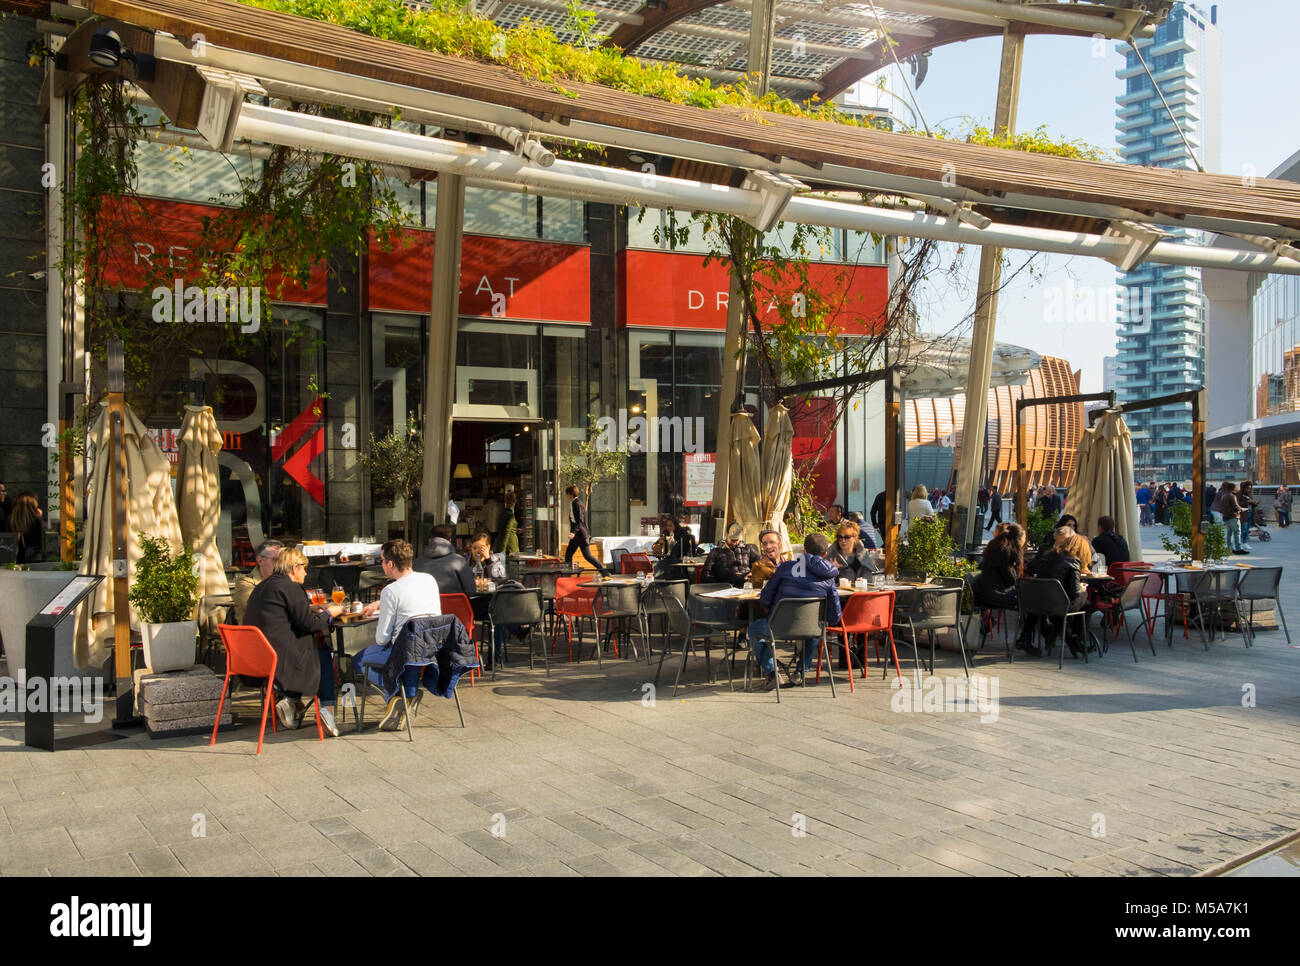 People at a street cafe in the Porta Nuova, Milan, Italy - the central business district - Stock Image